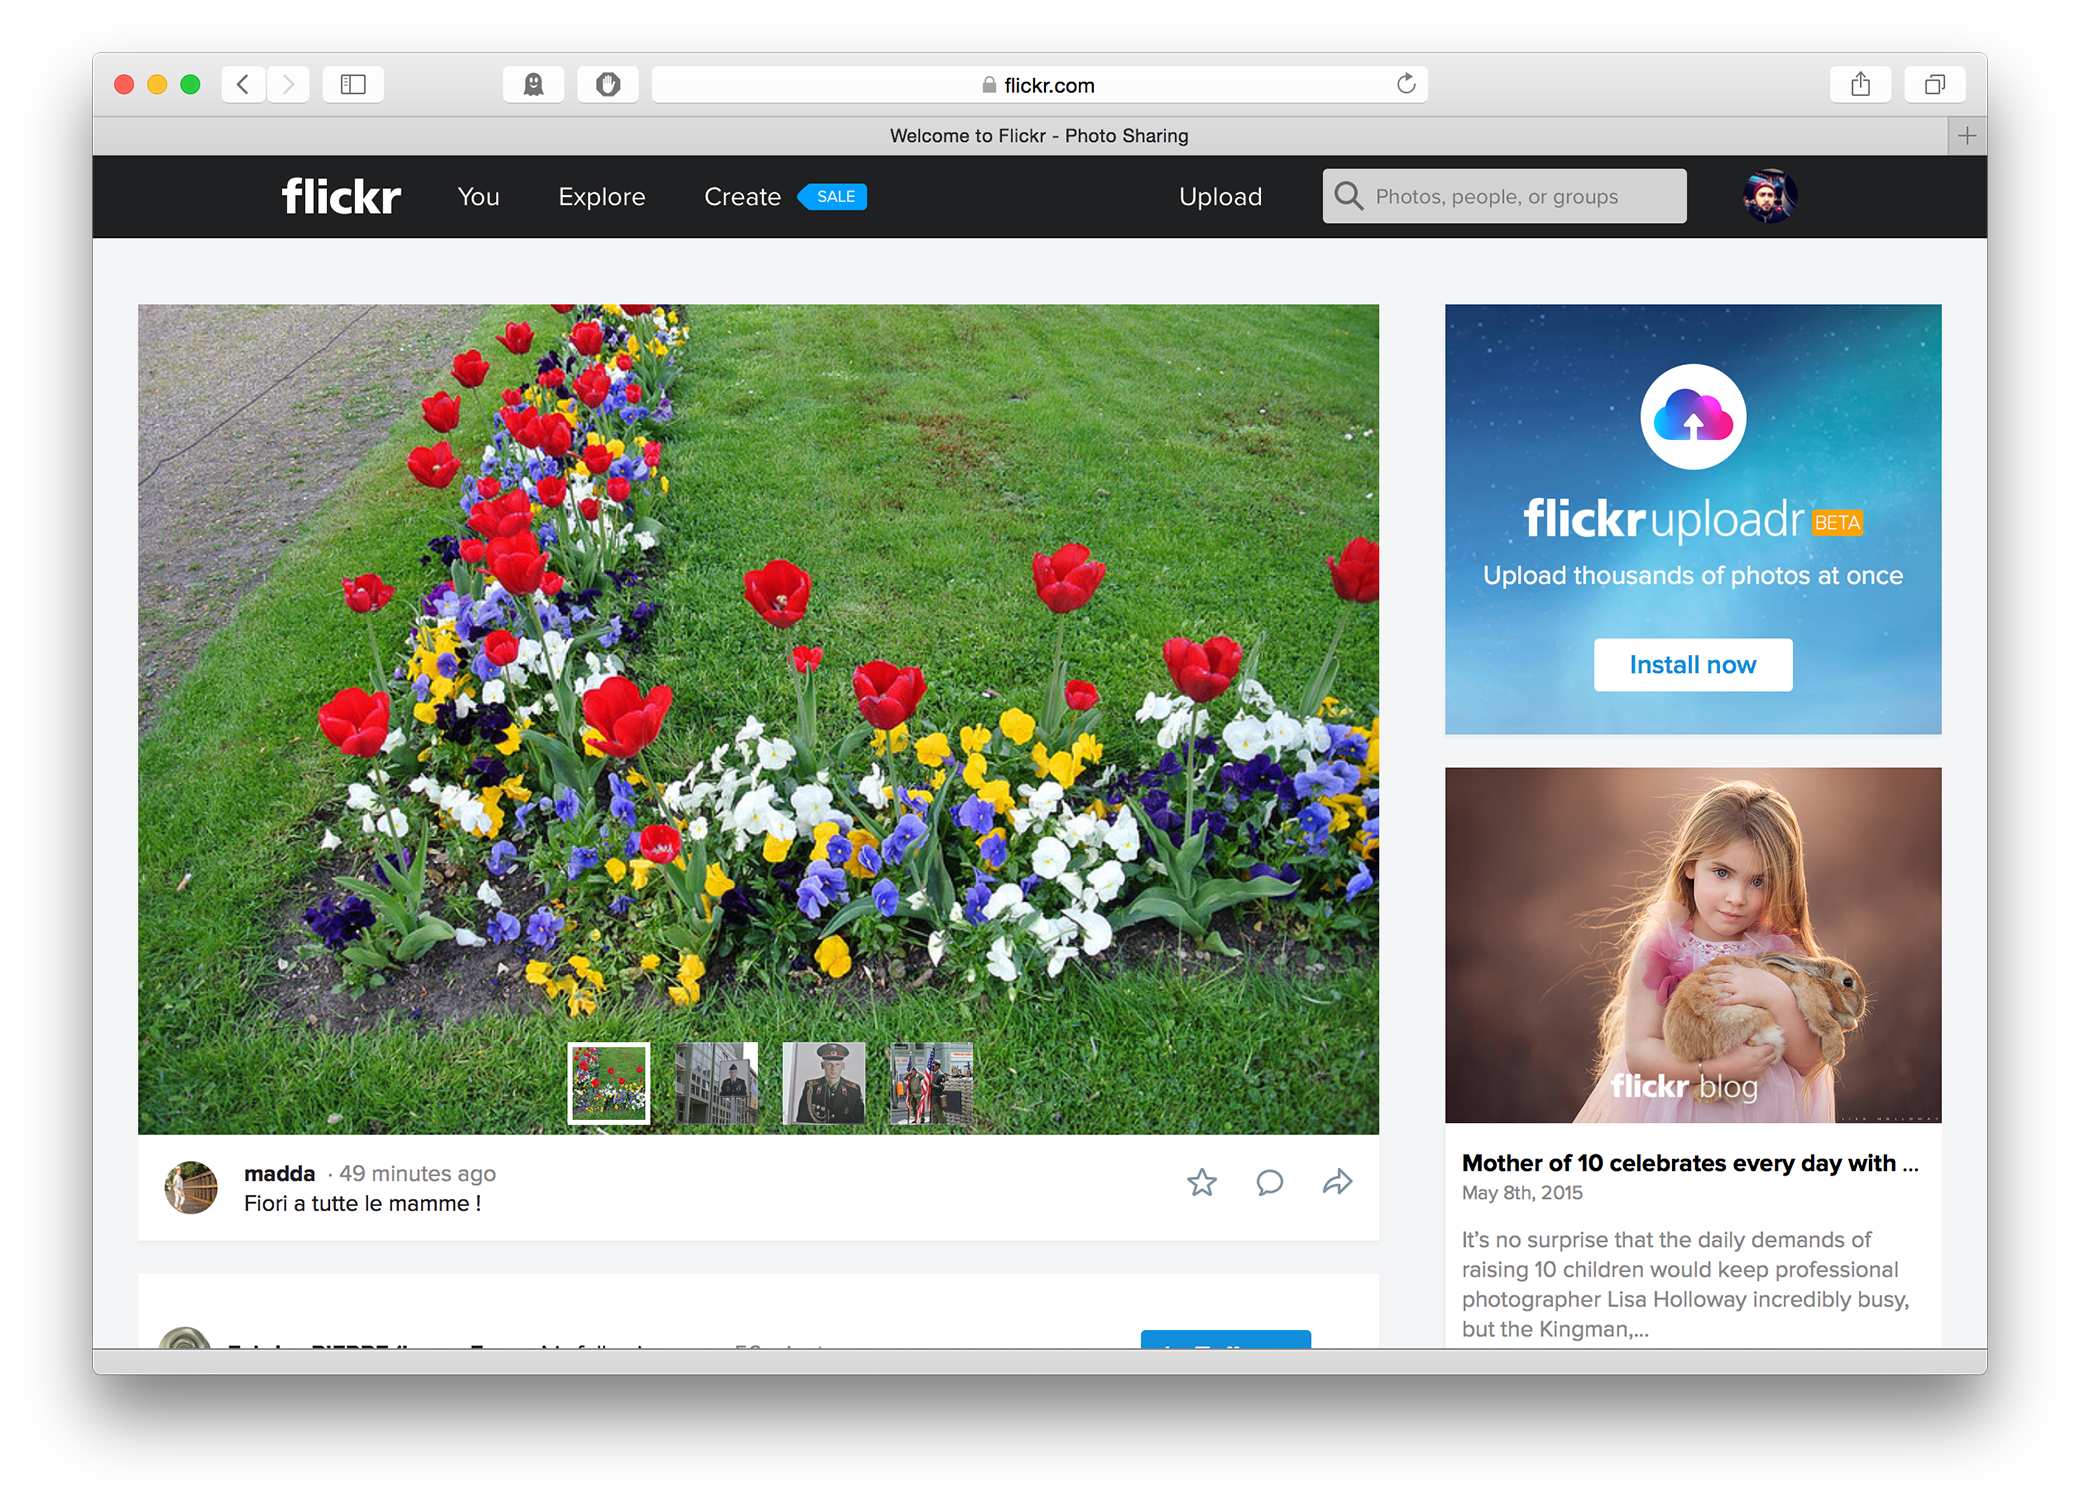 Flickr 4.0 - Main Page